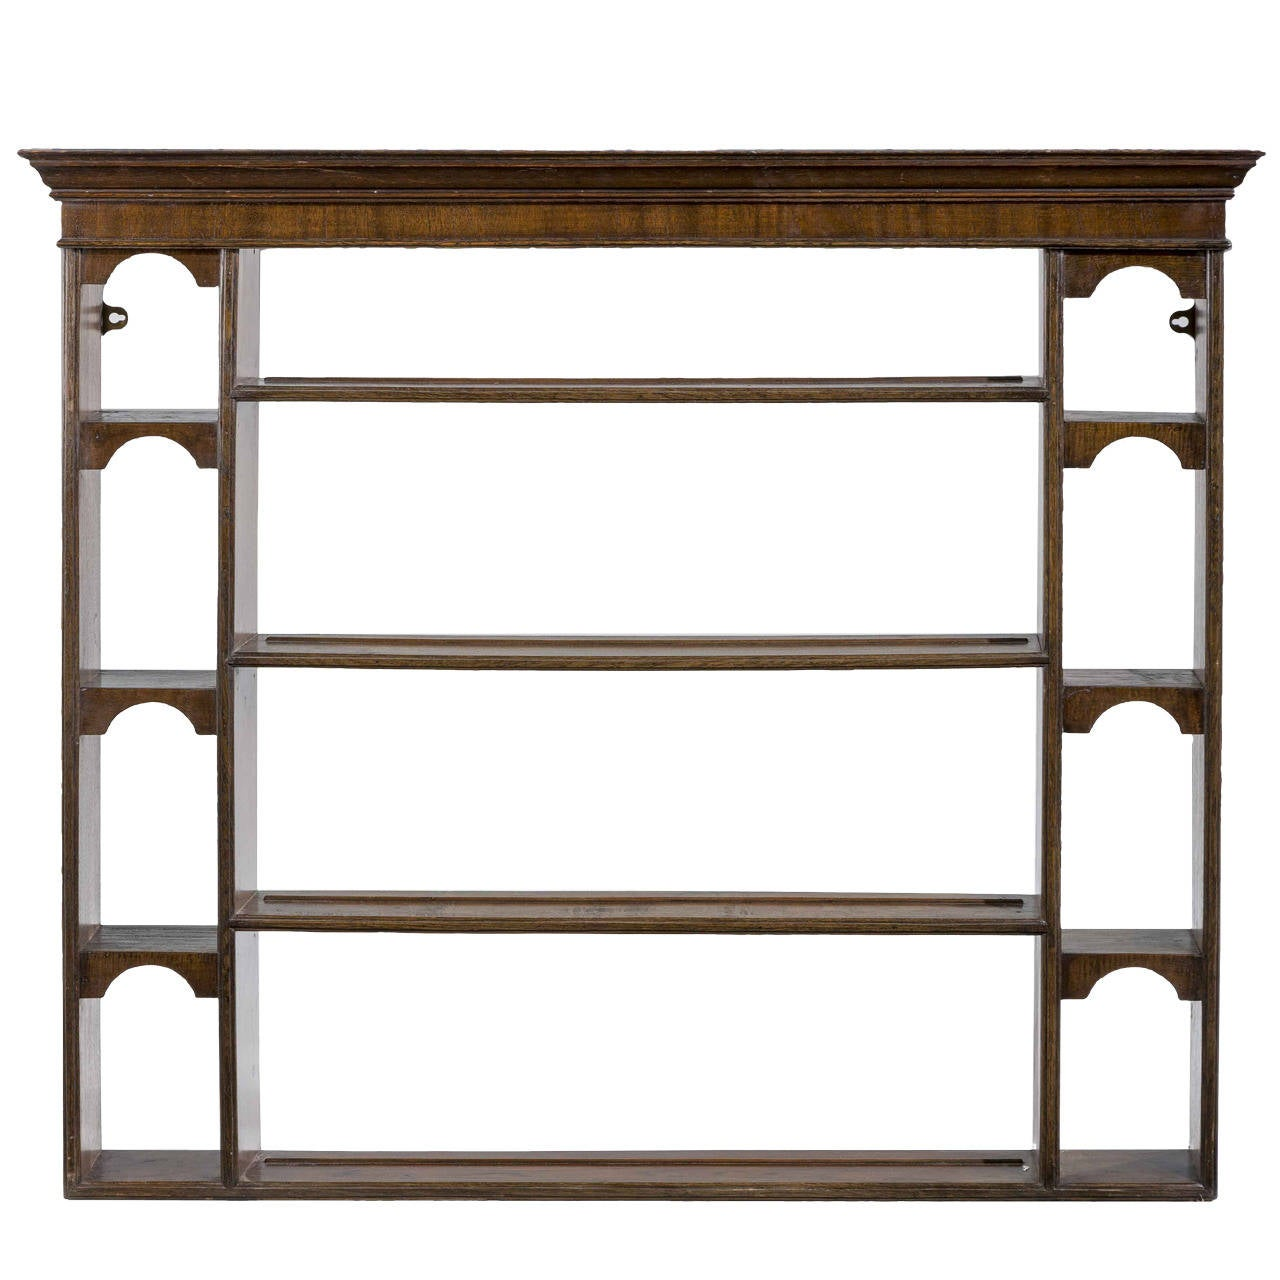 Early 19th Century Mahogany and Oak Delft Rack